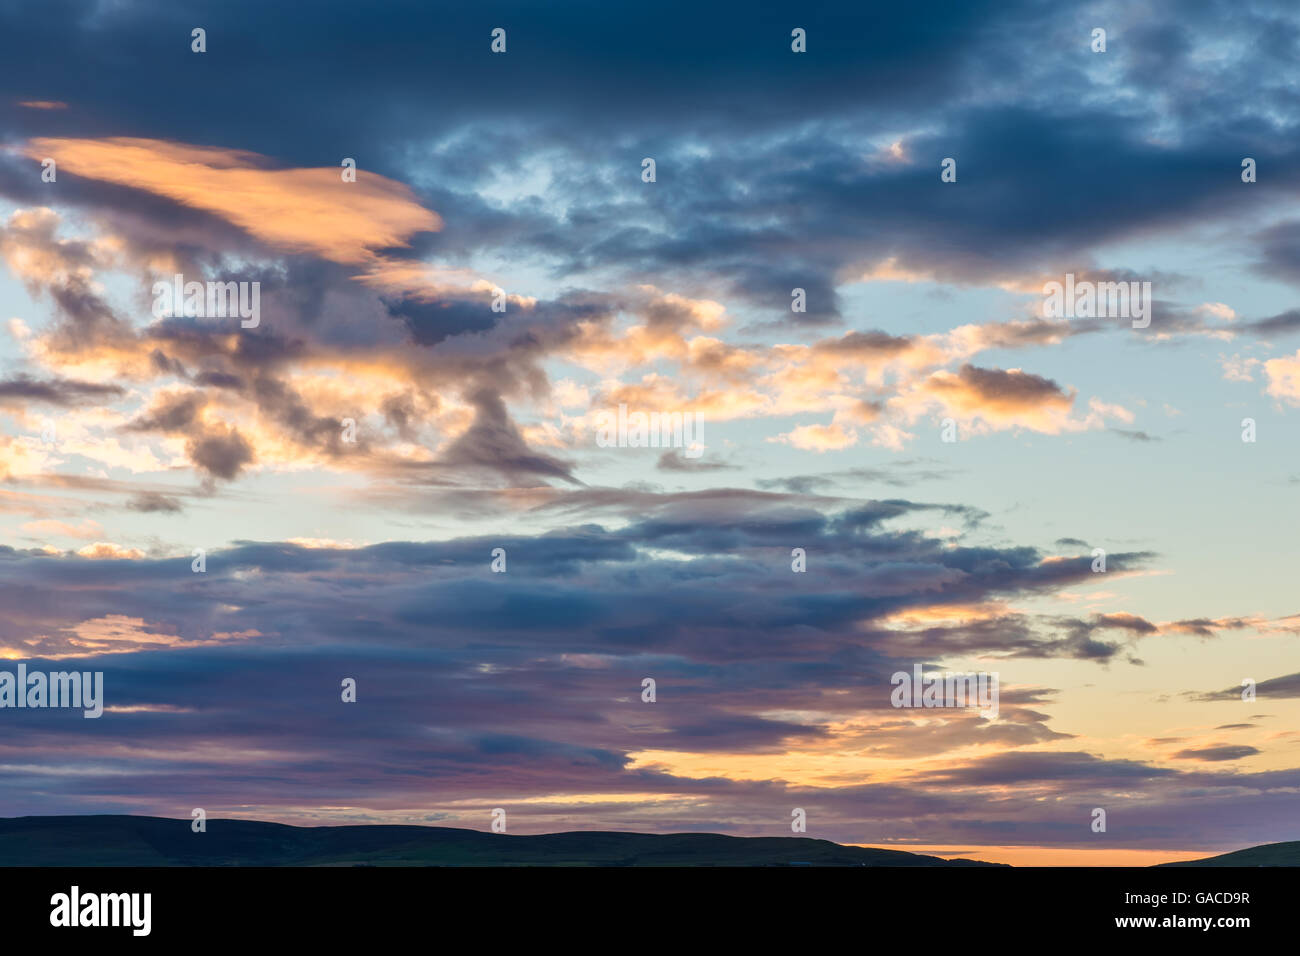 Prefect dawn sky - Stock Image